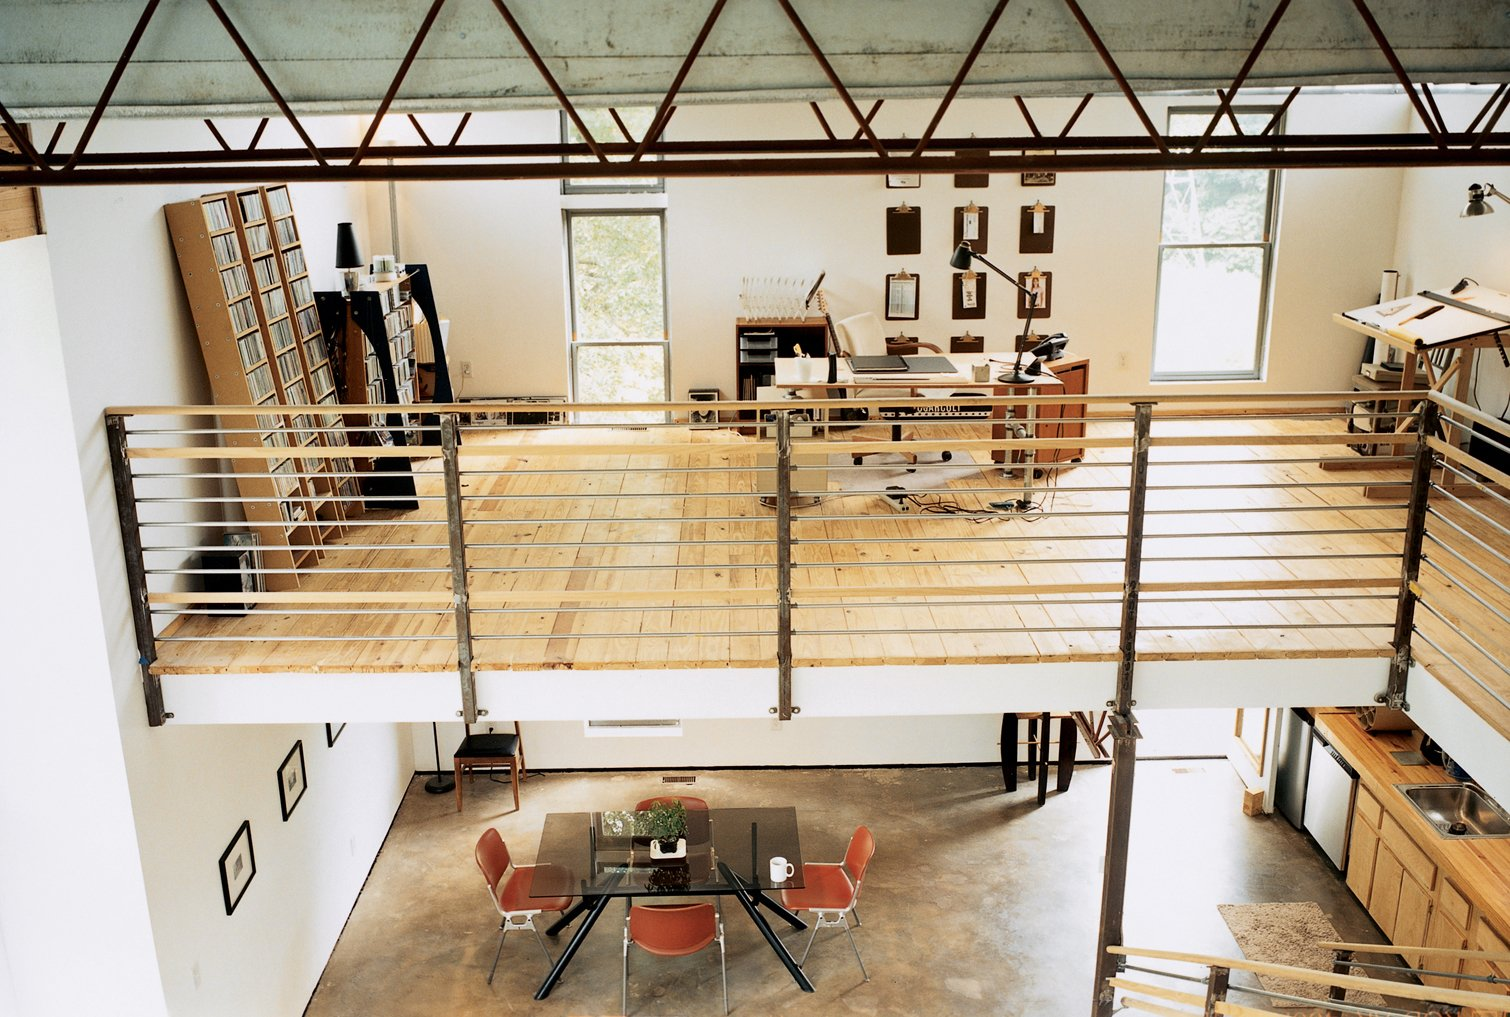 The bedroom overlooks an office, which floats above the kitchen and dining room. The railing and banister were fabricated by a local metal worker a few miles away.  Photo 3 of 8 in Mid-City Modern